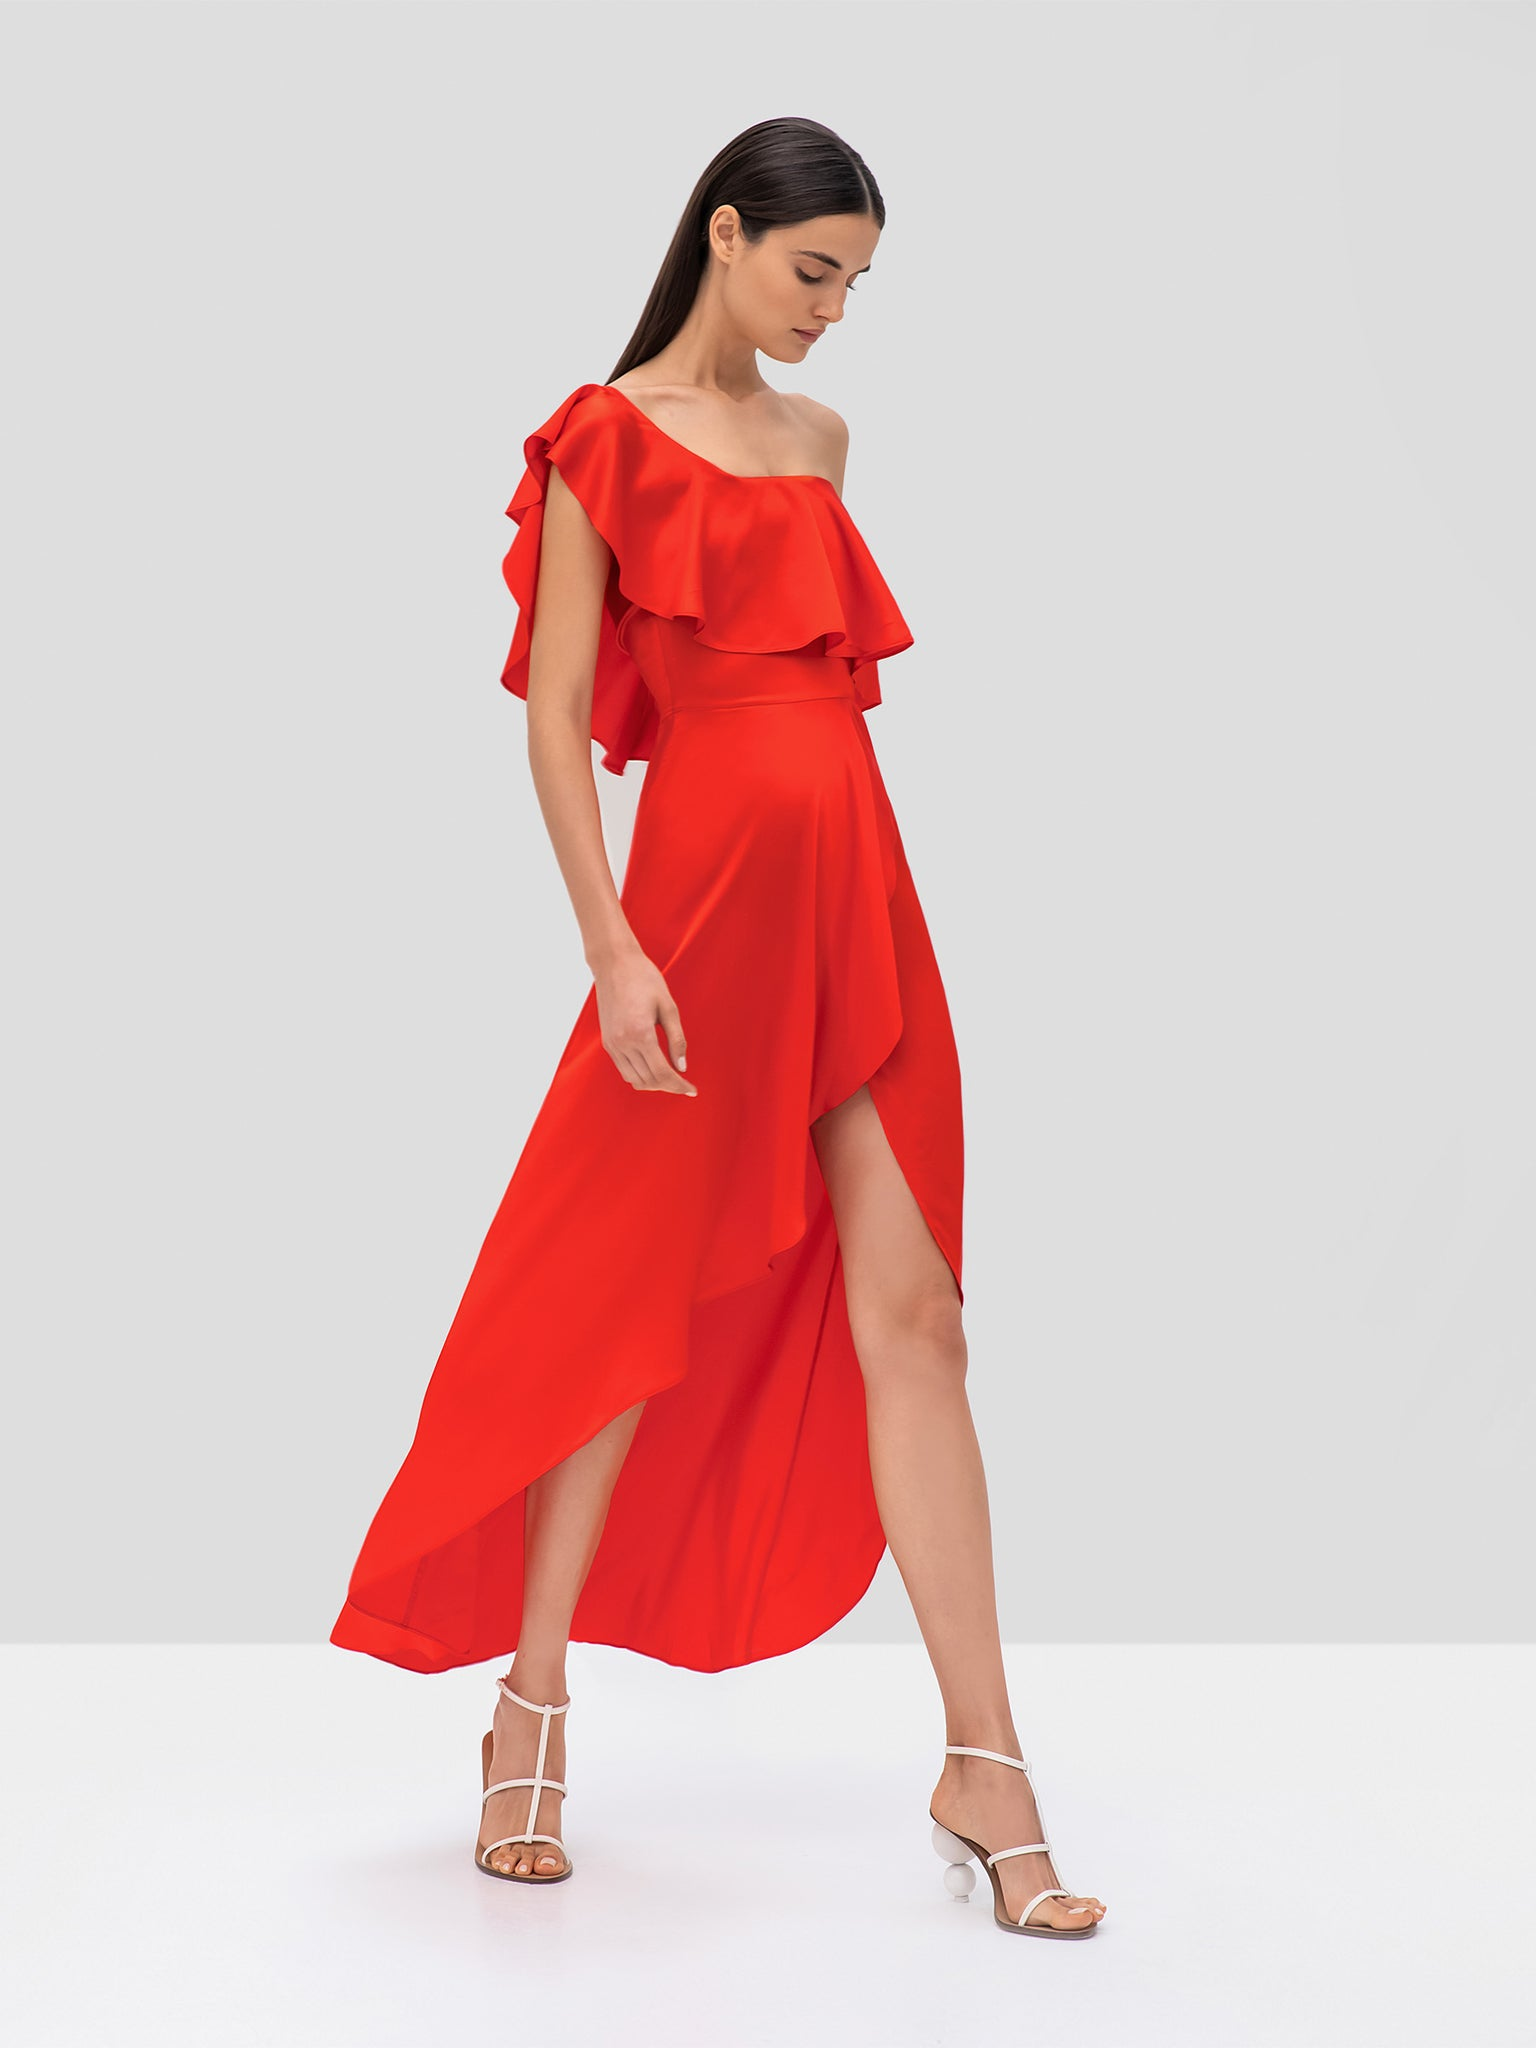 Alexis Austyn Dress in Red from the Pre Fall 2019 Ready To Wear Collection